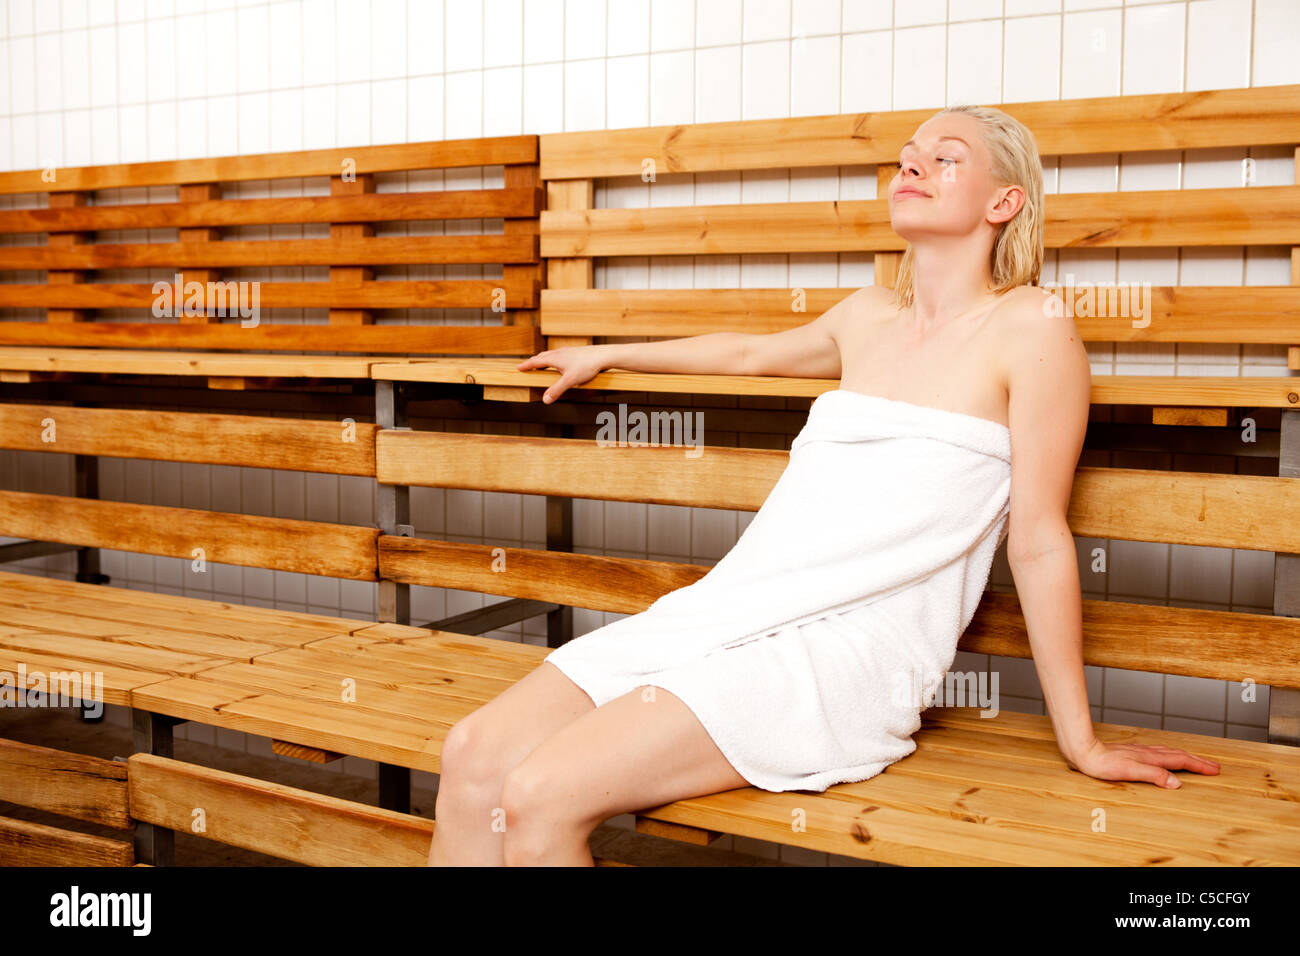 A woman sitting with eyes closed in a spa sauna - Stock Image